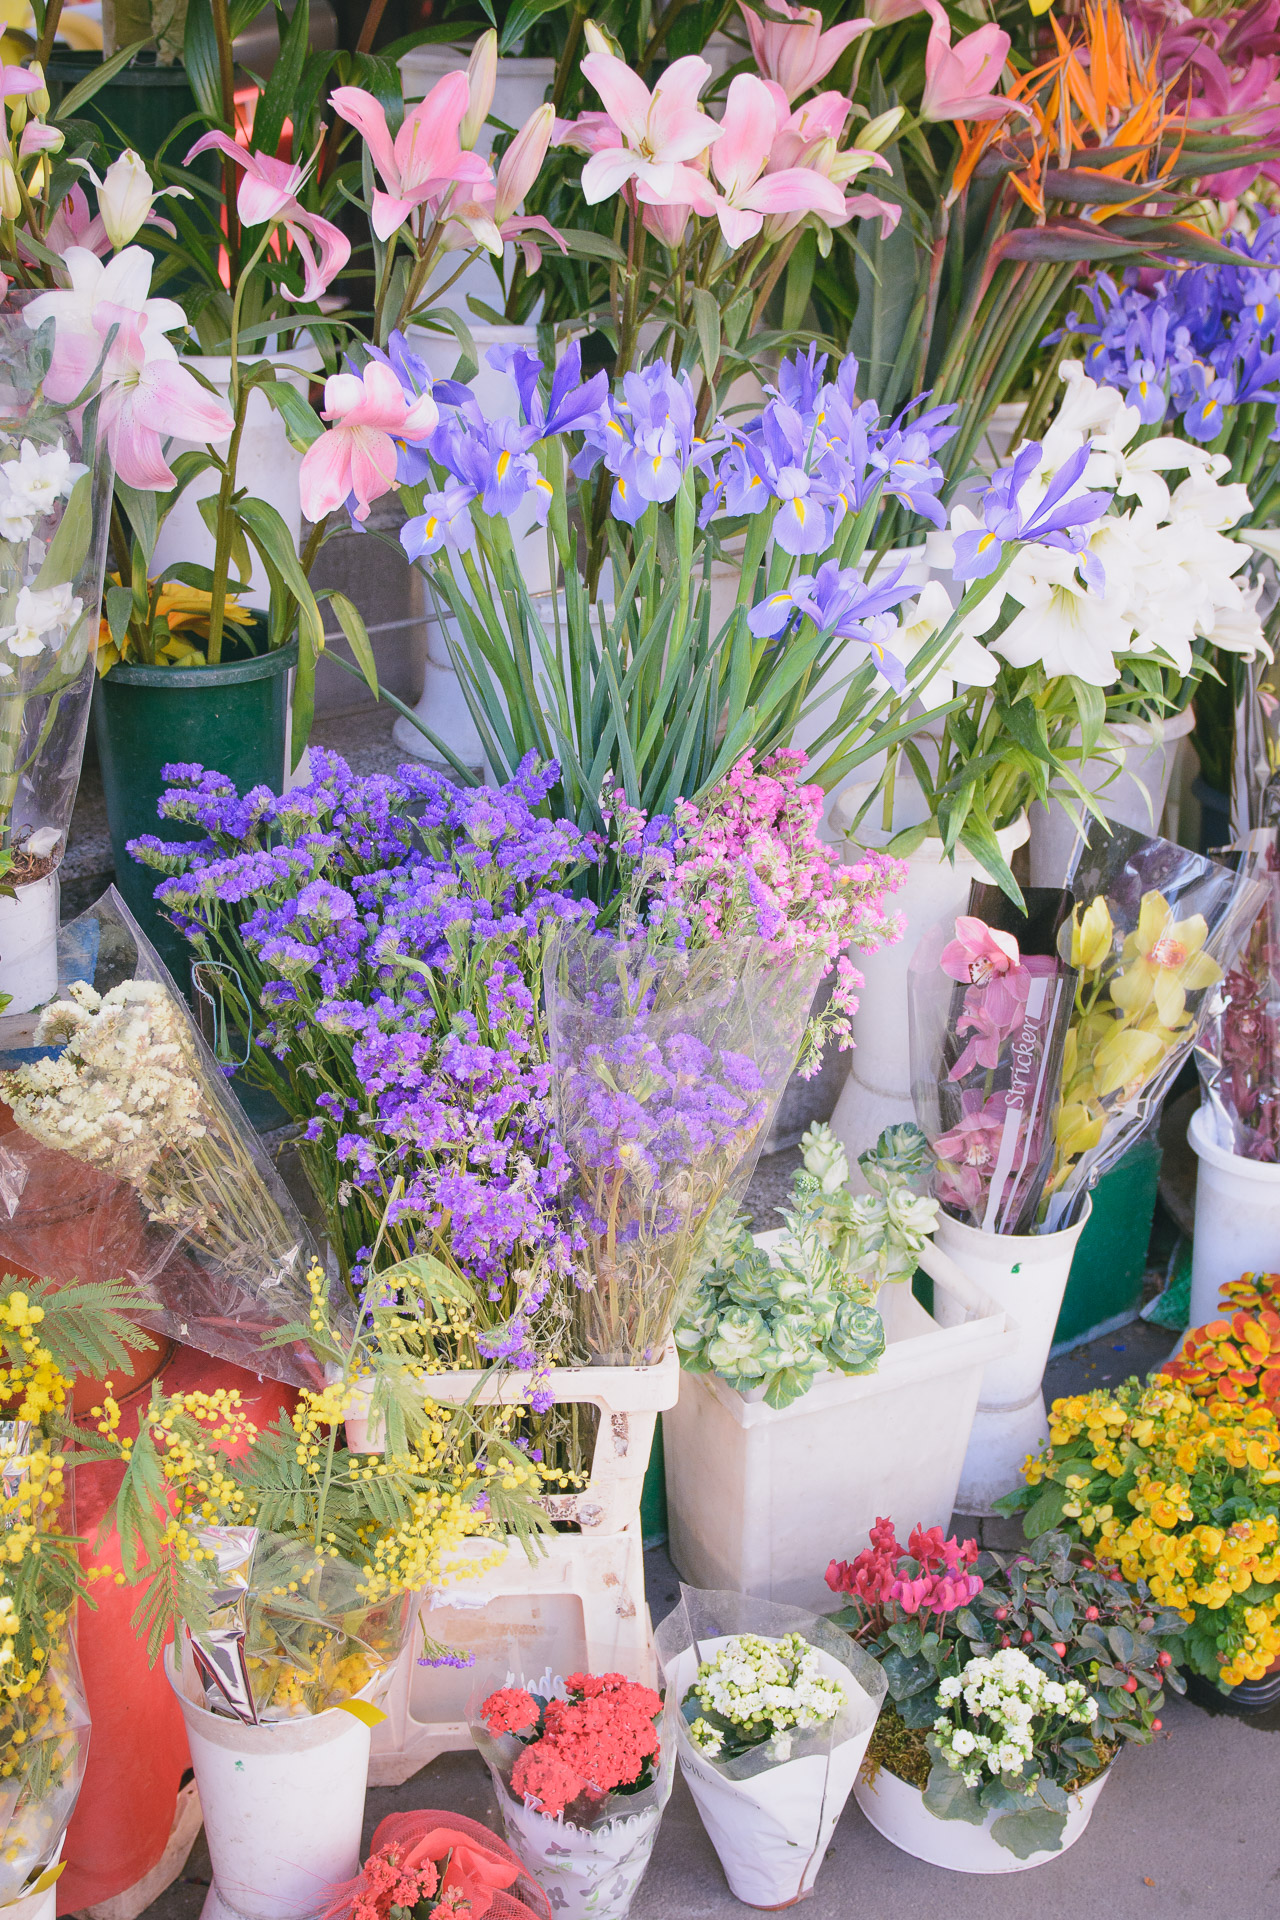 Flowers of Rome